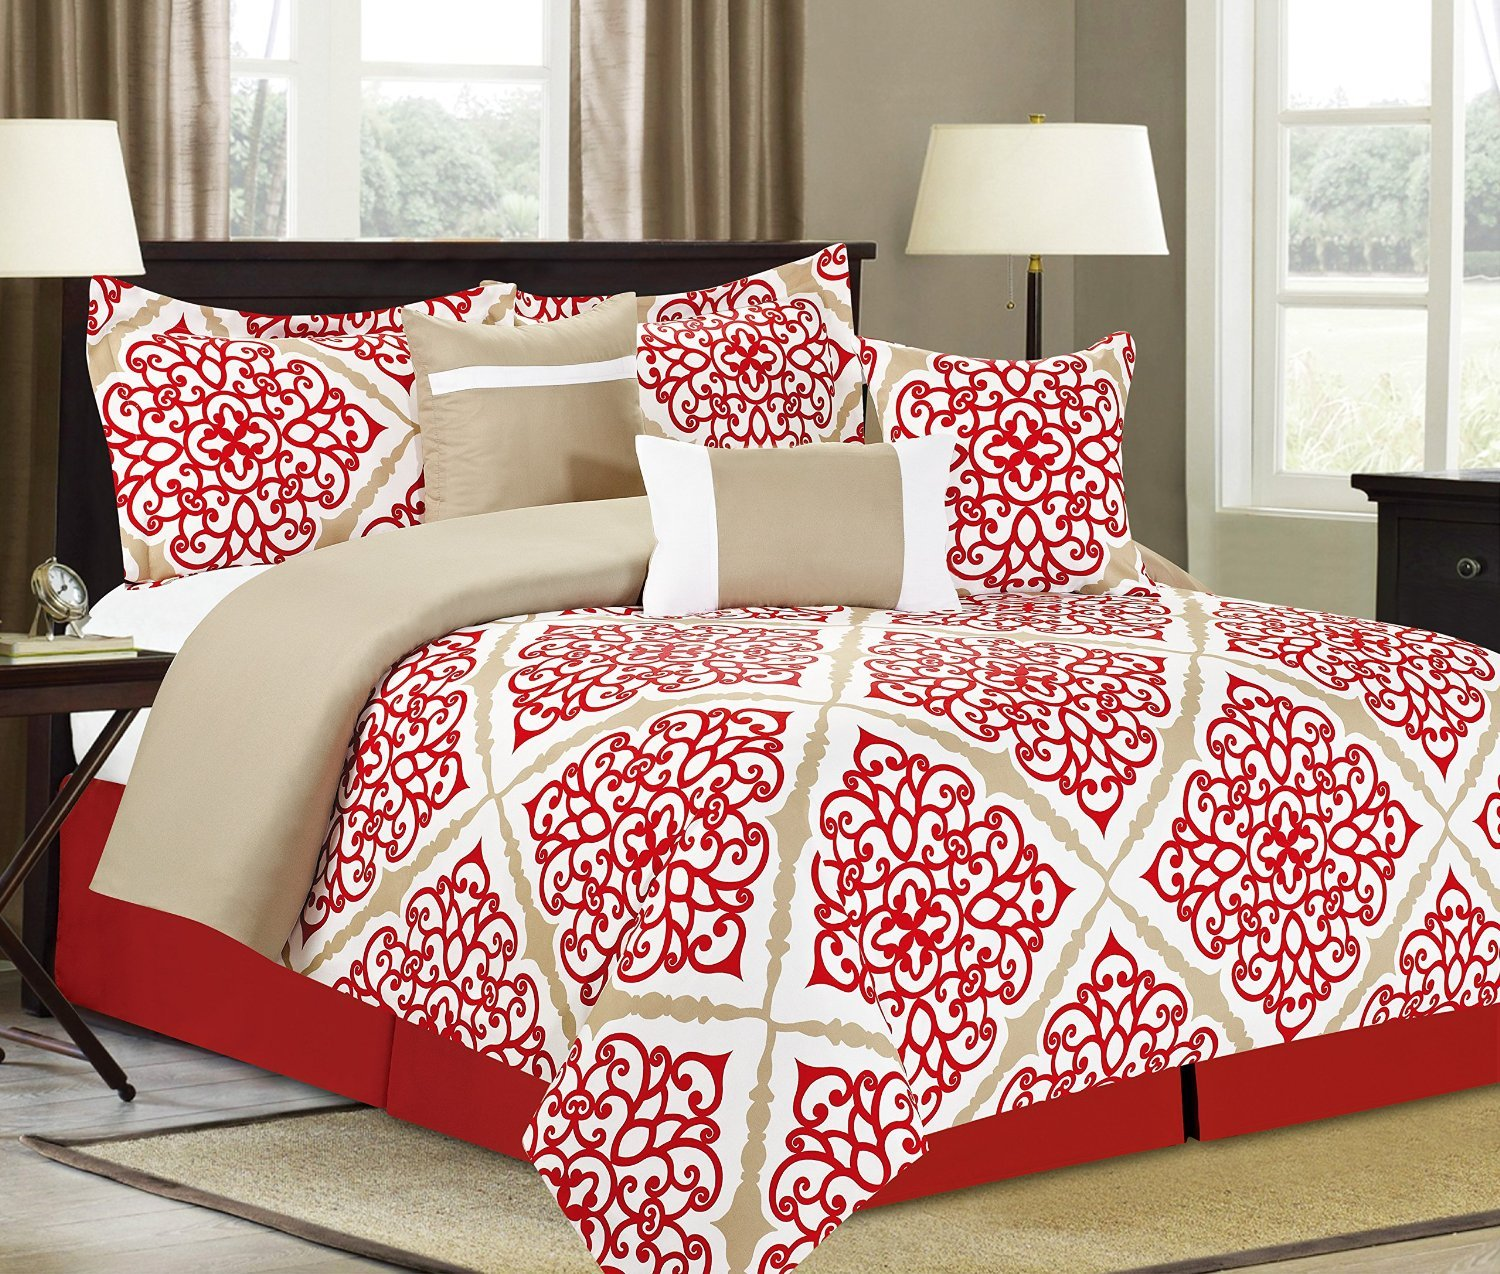 King Comforter 7 Bedding Piece Set, Red and Tan Damask Medallion Print